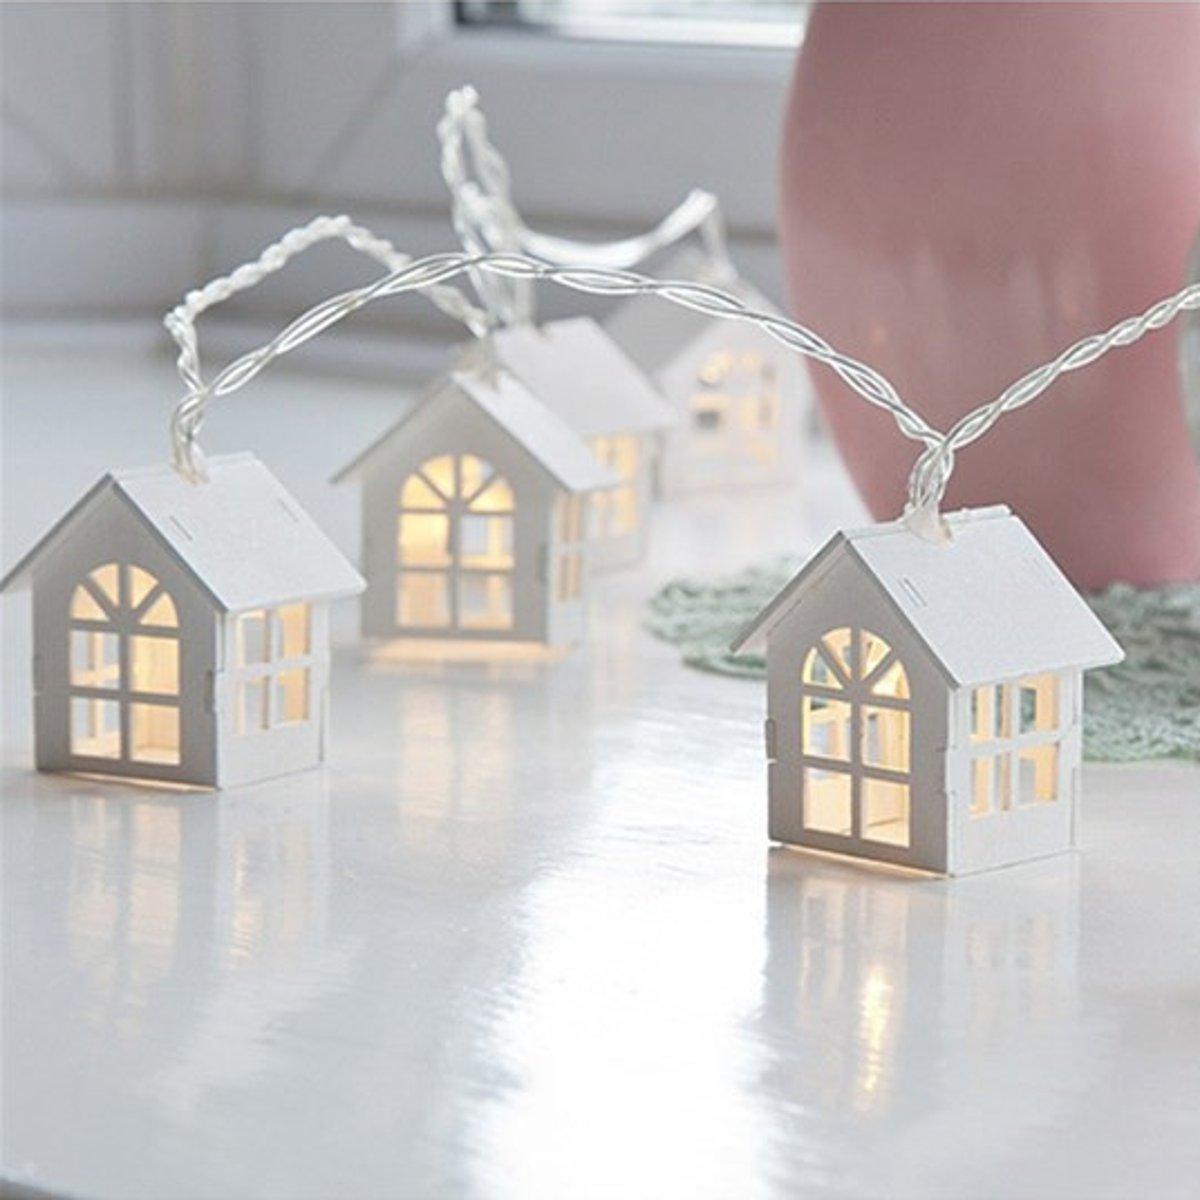 1.5M Warm White 10LED String Light Battery Powered House Shape Fairy Lamp Wedding Party Festival Home Indoor Decor